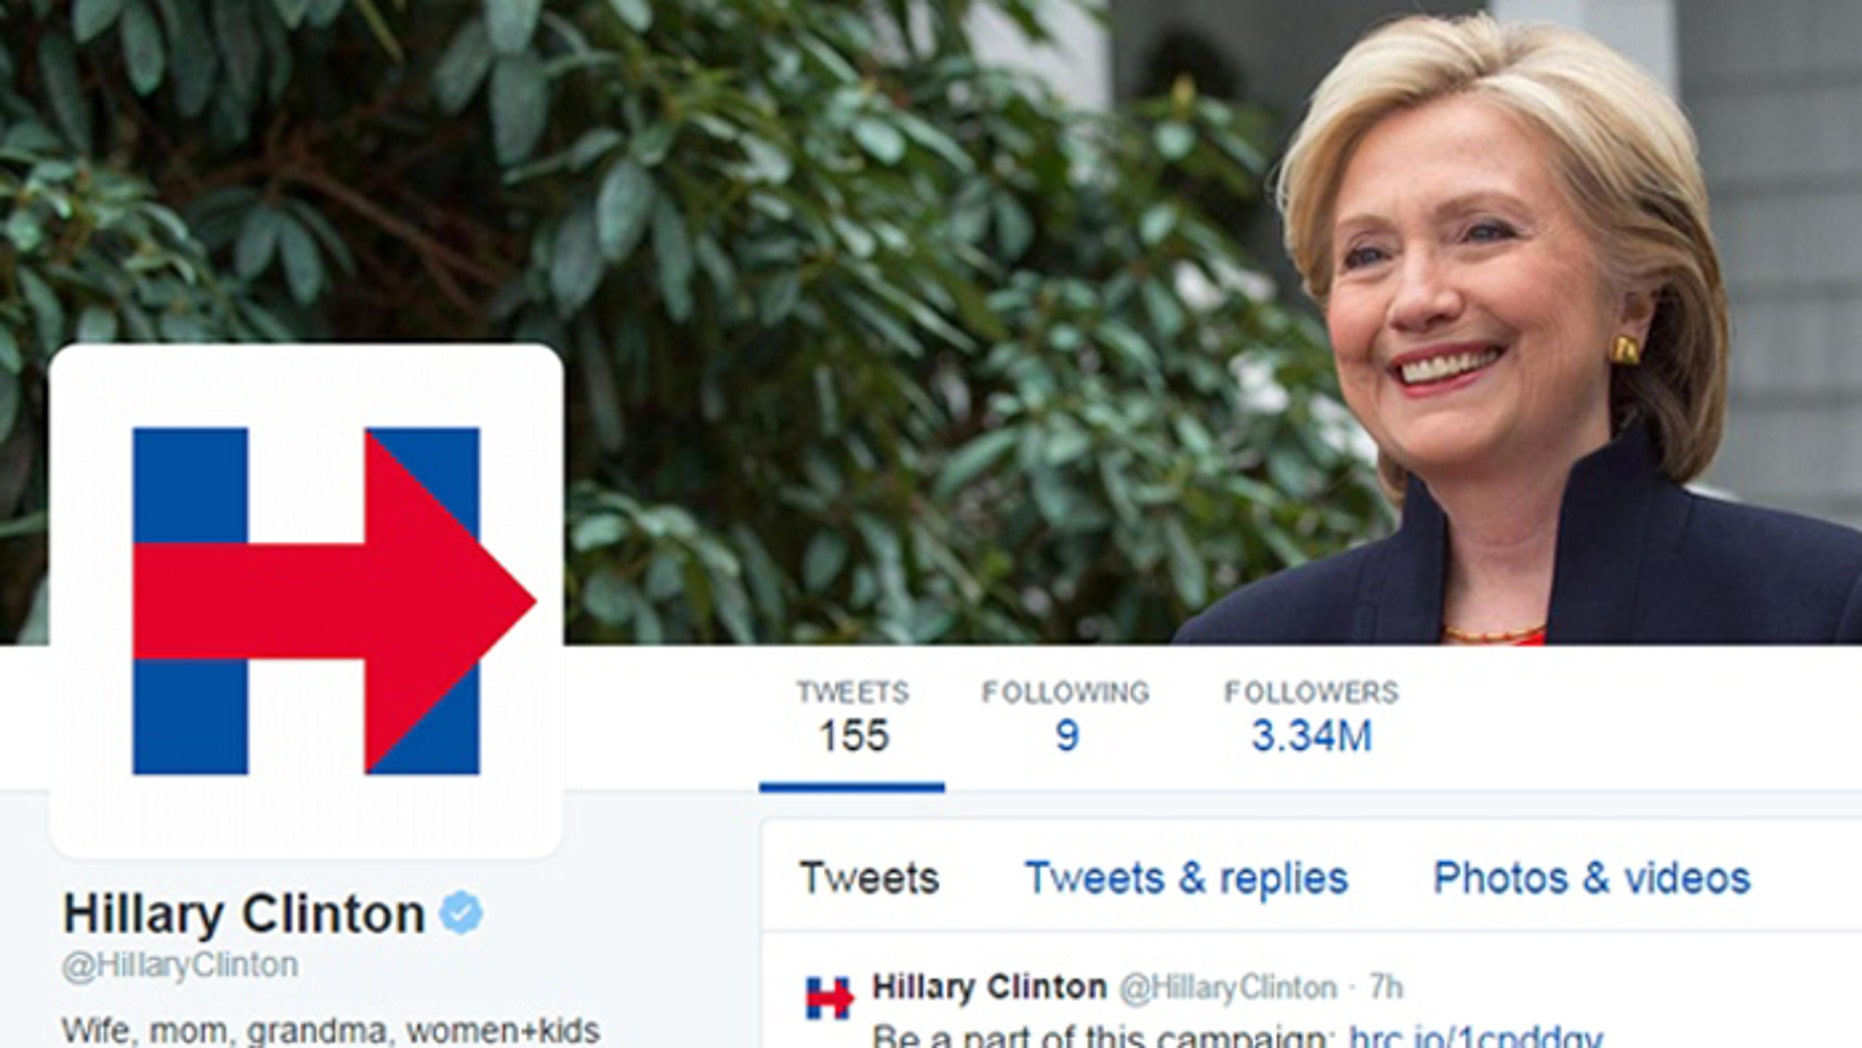 Former Secretary of State Hillary Clinton's logo has been likened to a traffic sign and the Wikileaks emblem.